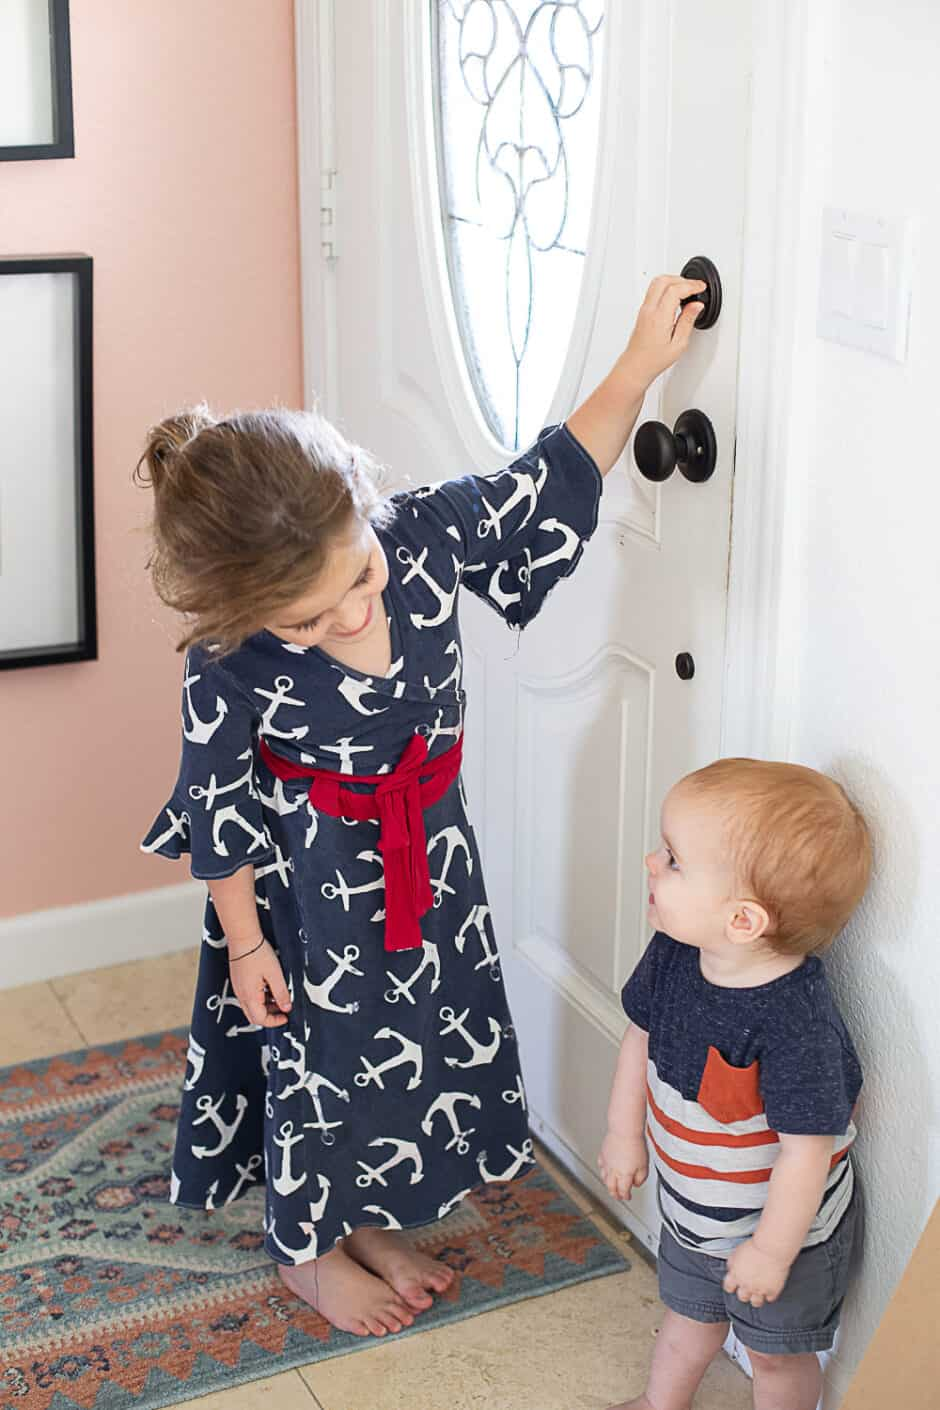 babyproofing the house